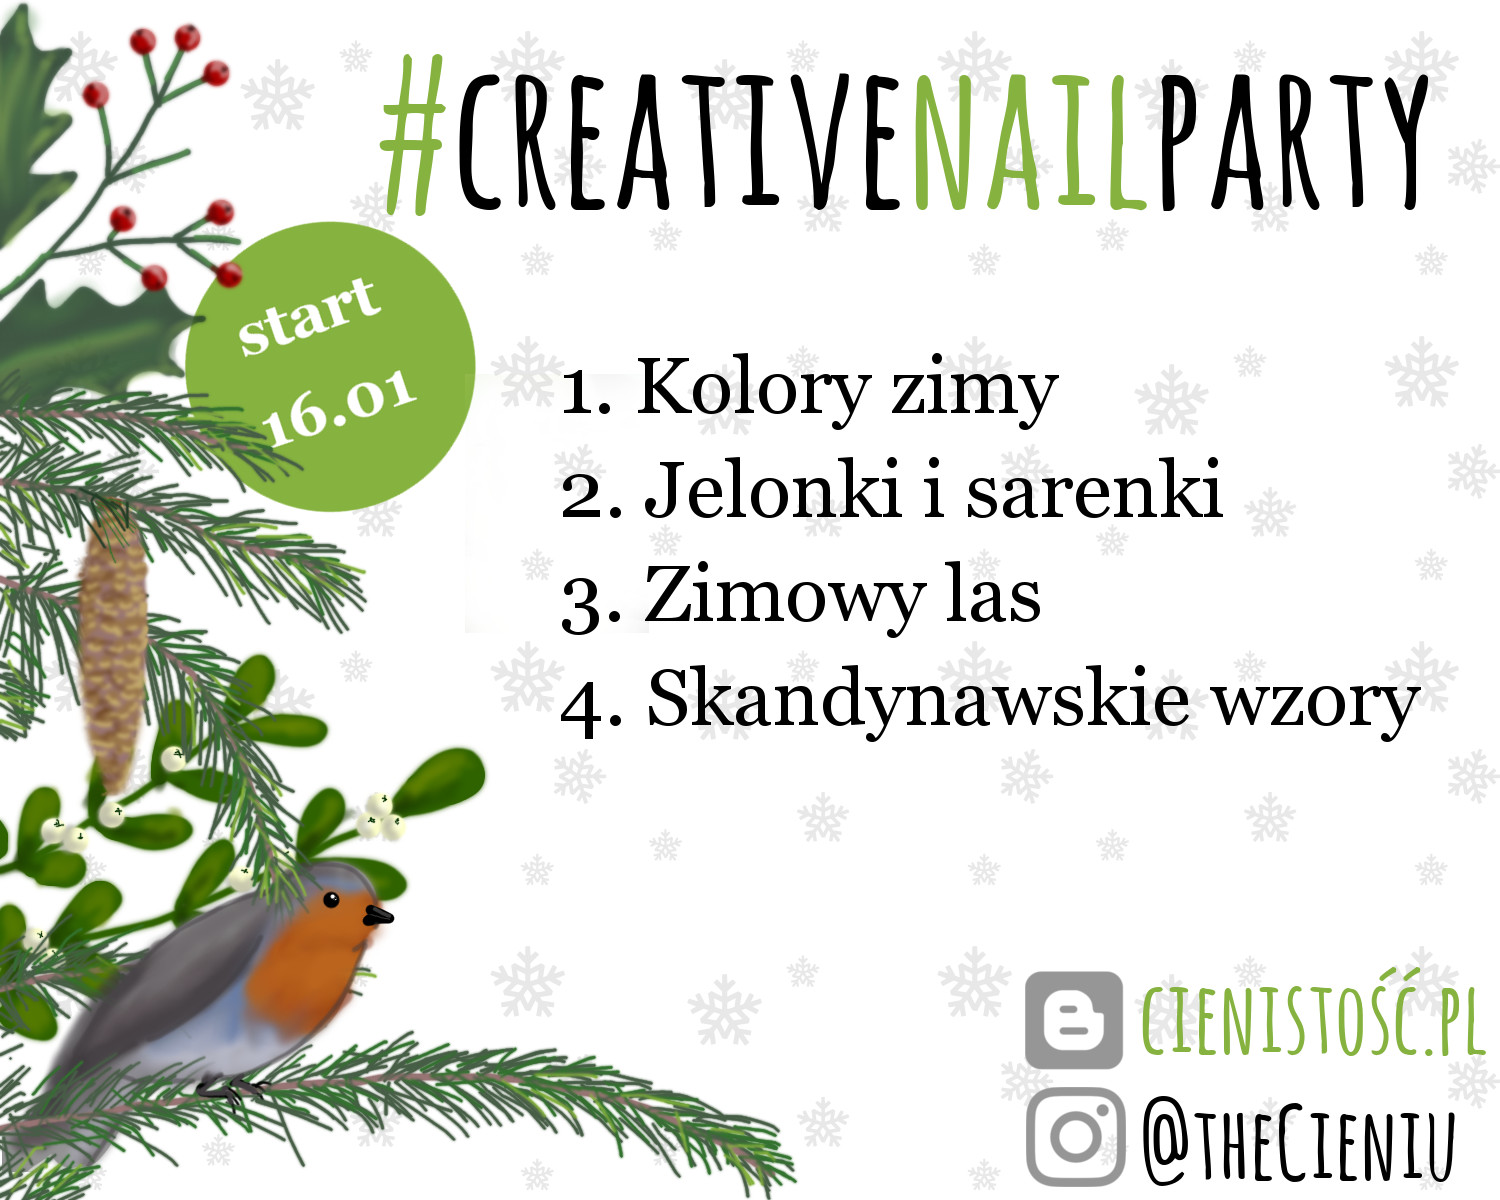 #CREATIVENAILPARTY